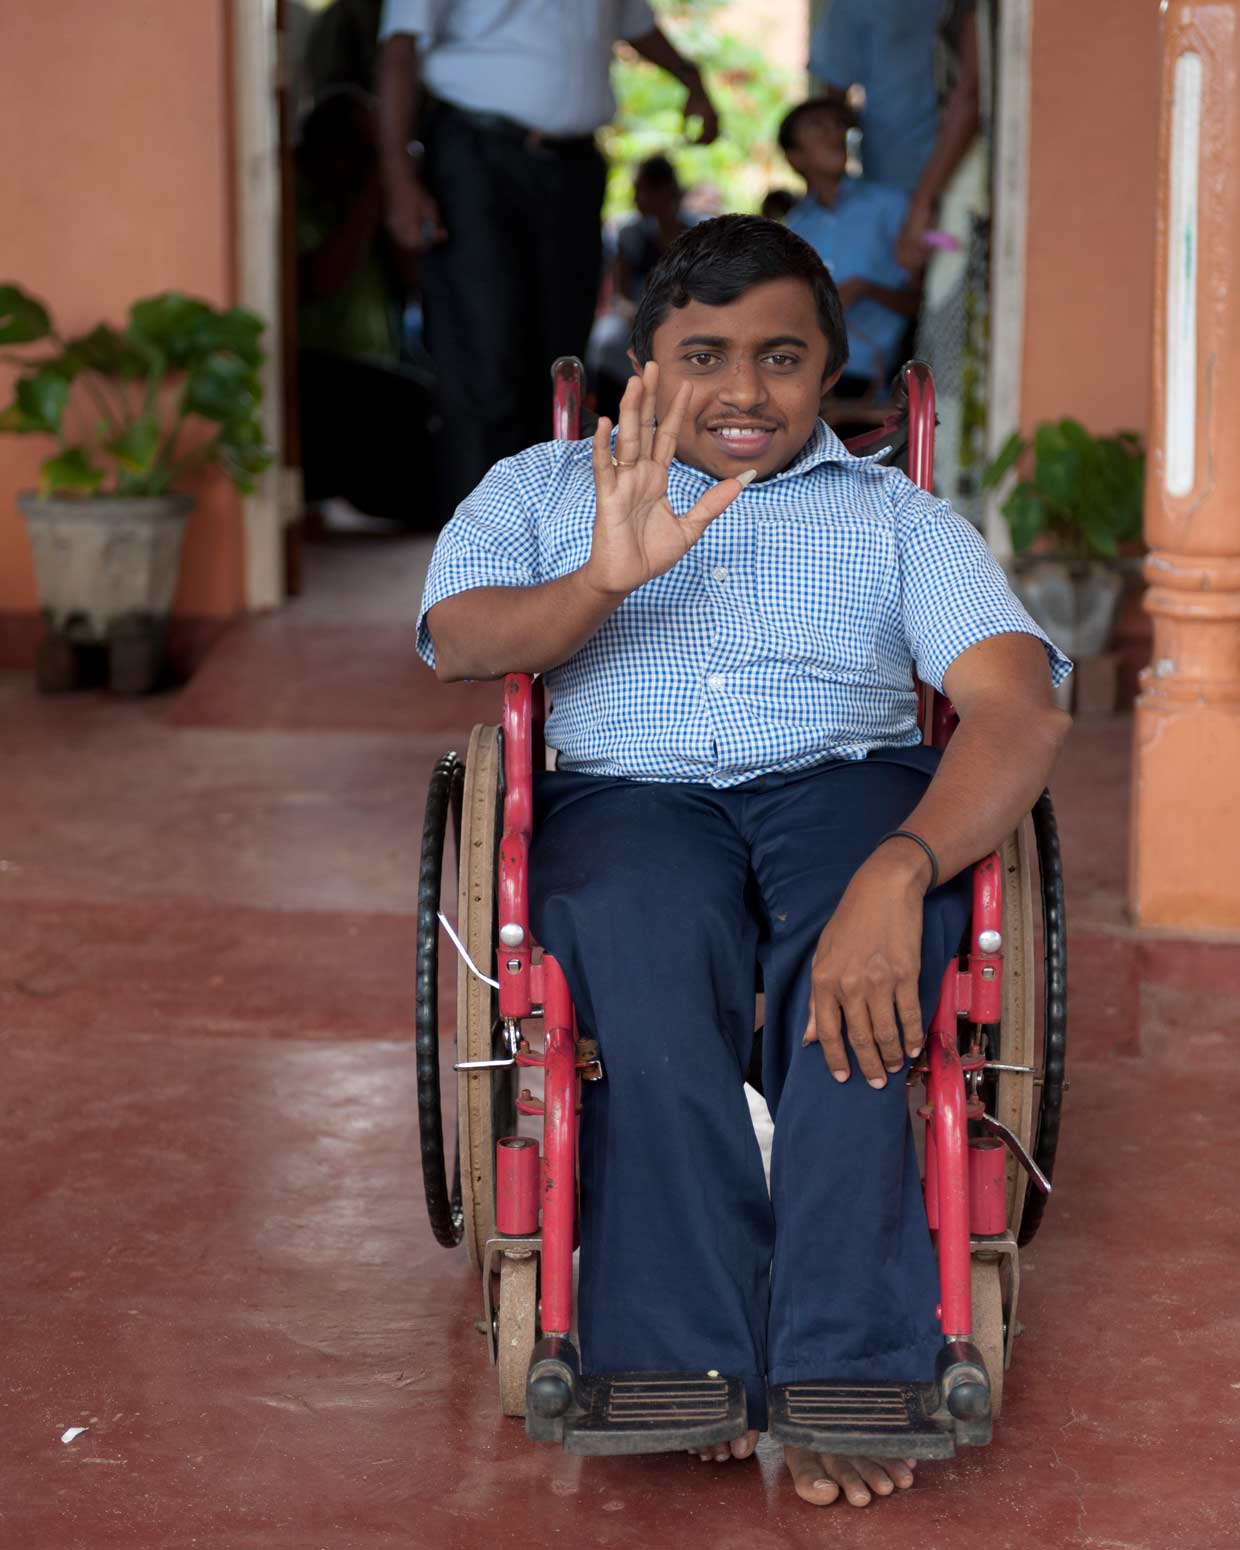 The MJF Charitable Foundation introduced a comprehensive programme to address the needs of the differently abled in Sri Lanka in 2008. The programme supports the wellbeing of children and youth with special needs.